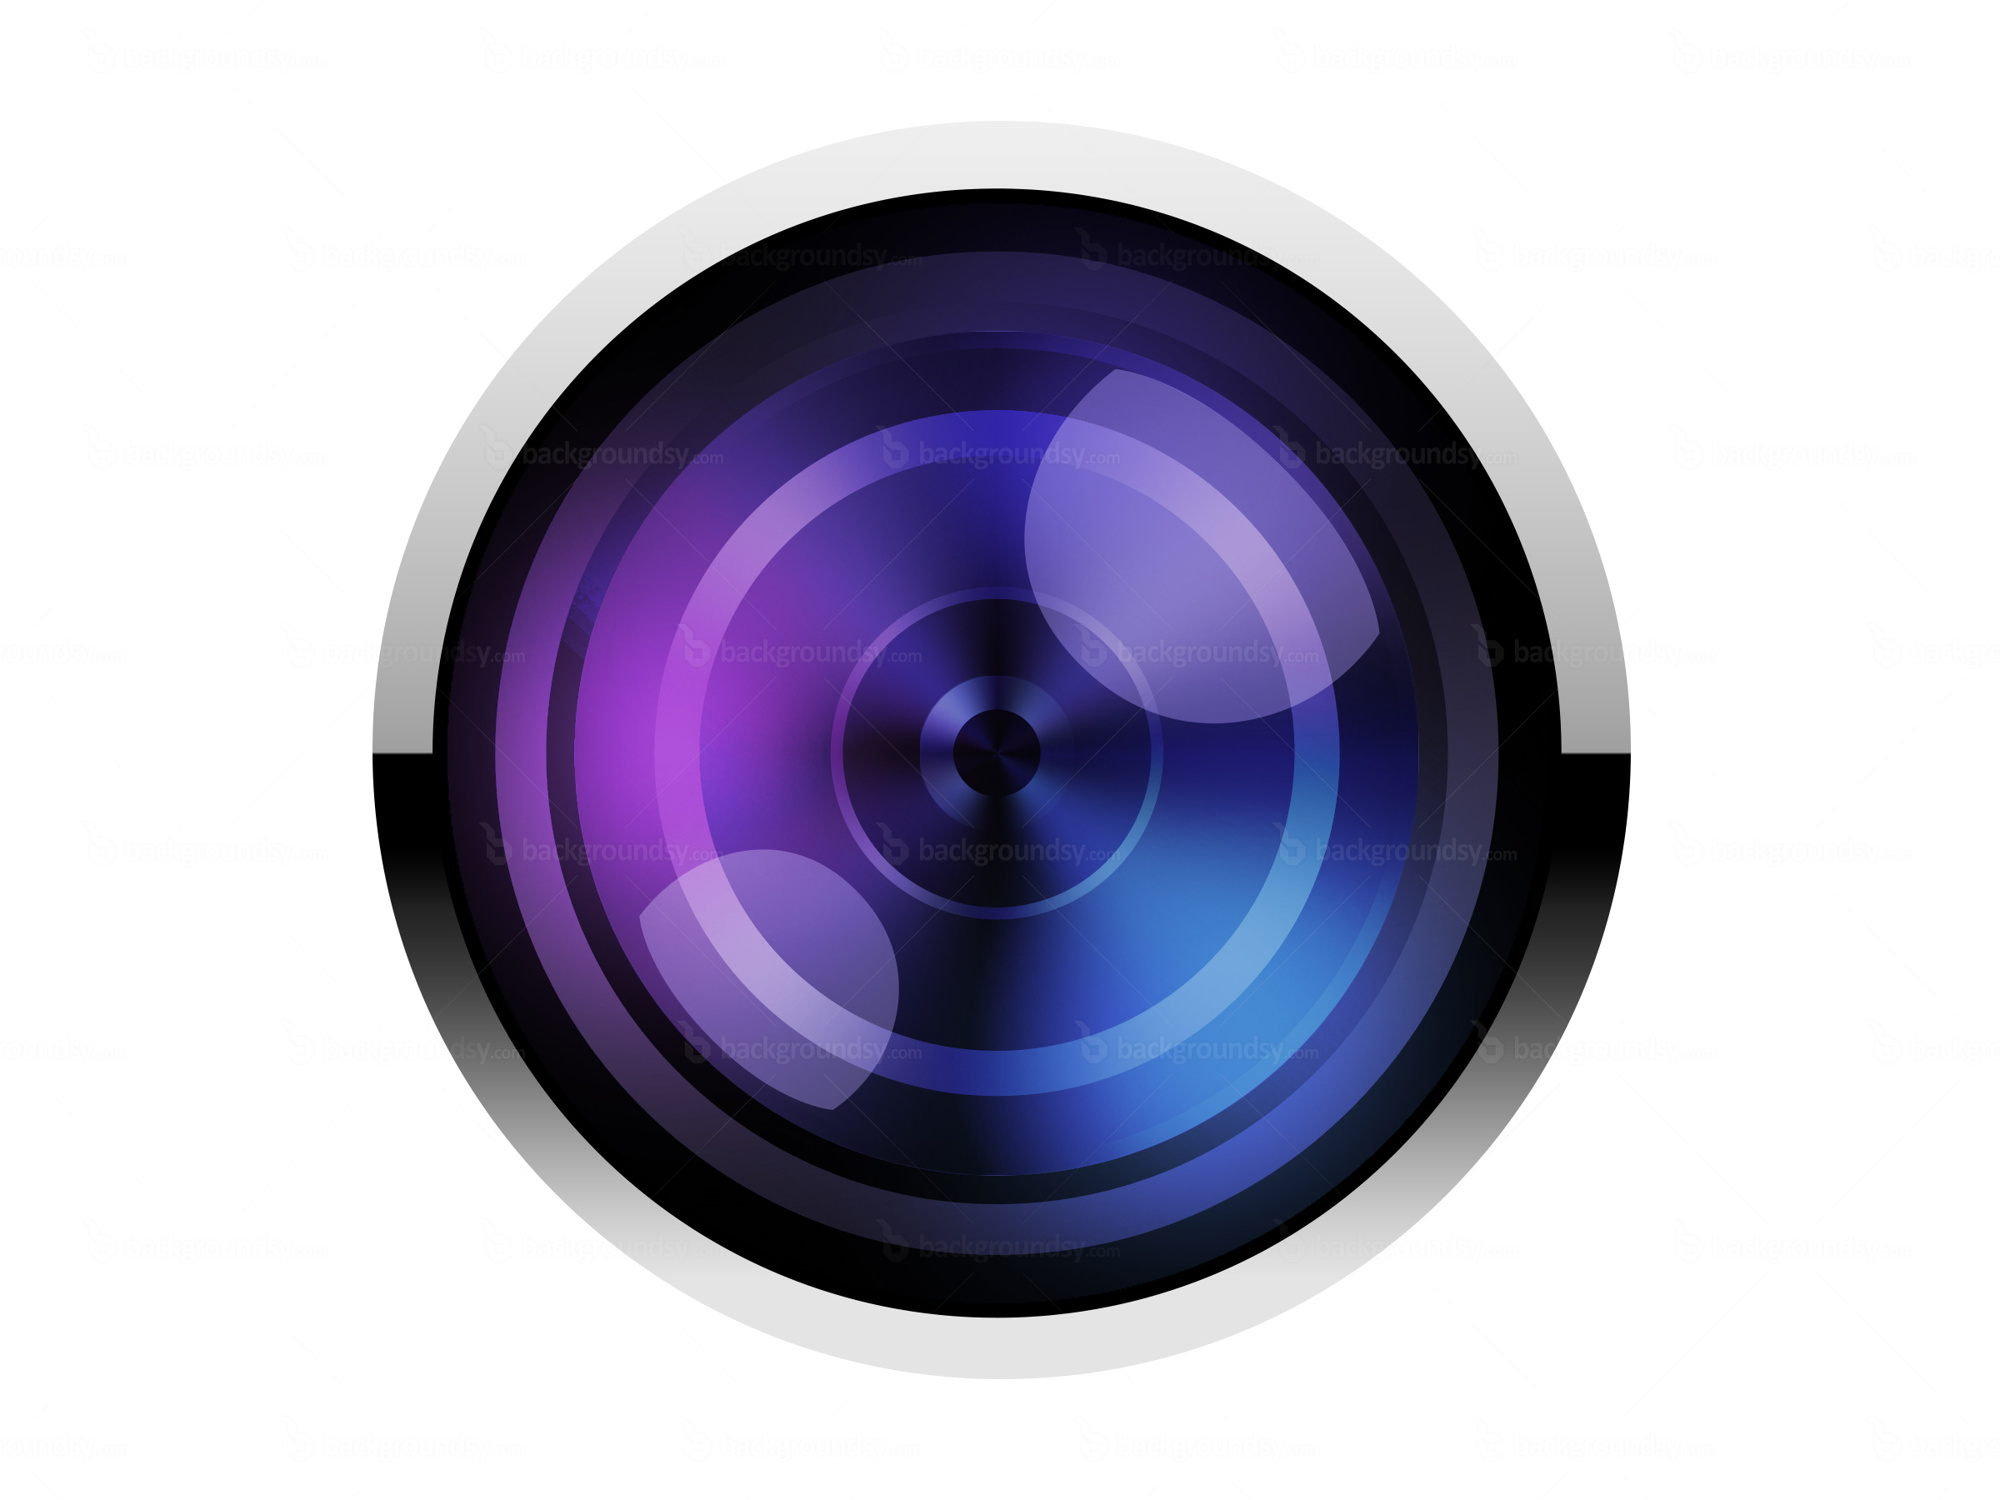 lens and image Specific lenses can be found by browsing the categories lens, lens maker, or lens mount a photographic lens is an optical device through which light is focused in order to form an image inside a camera, either on film or a digital sensor.